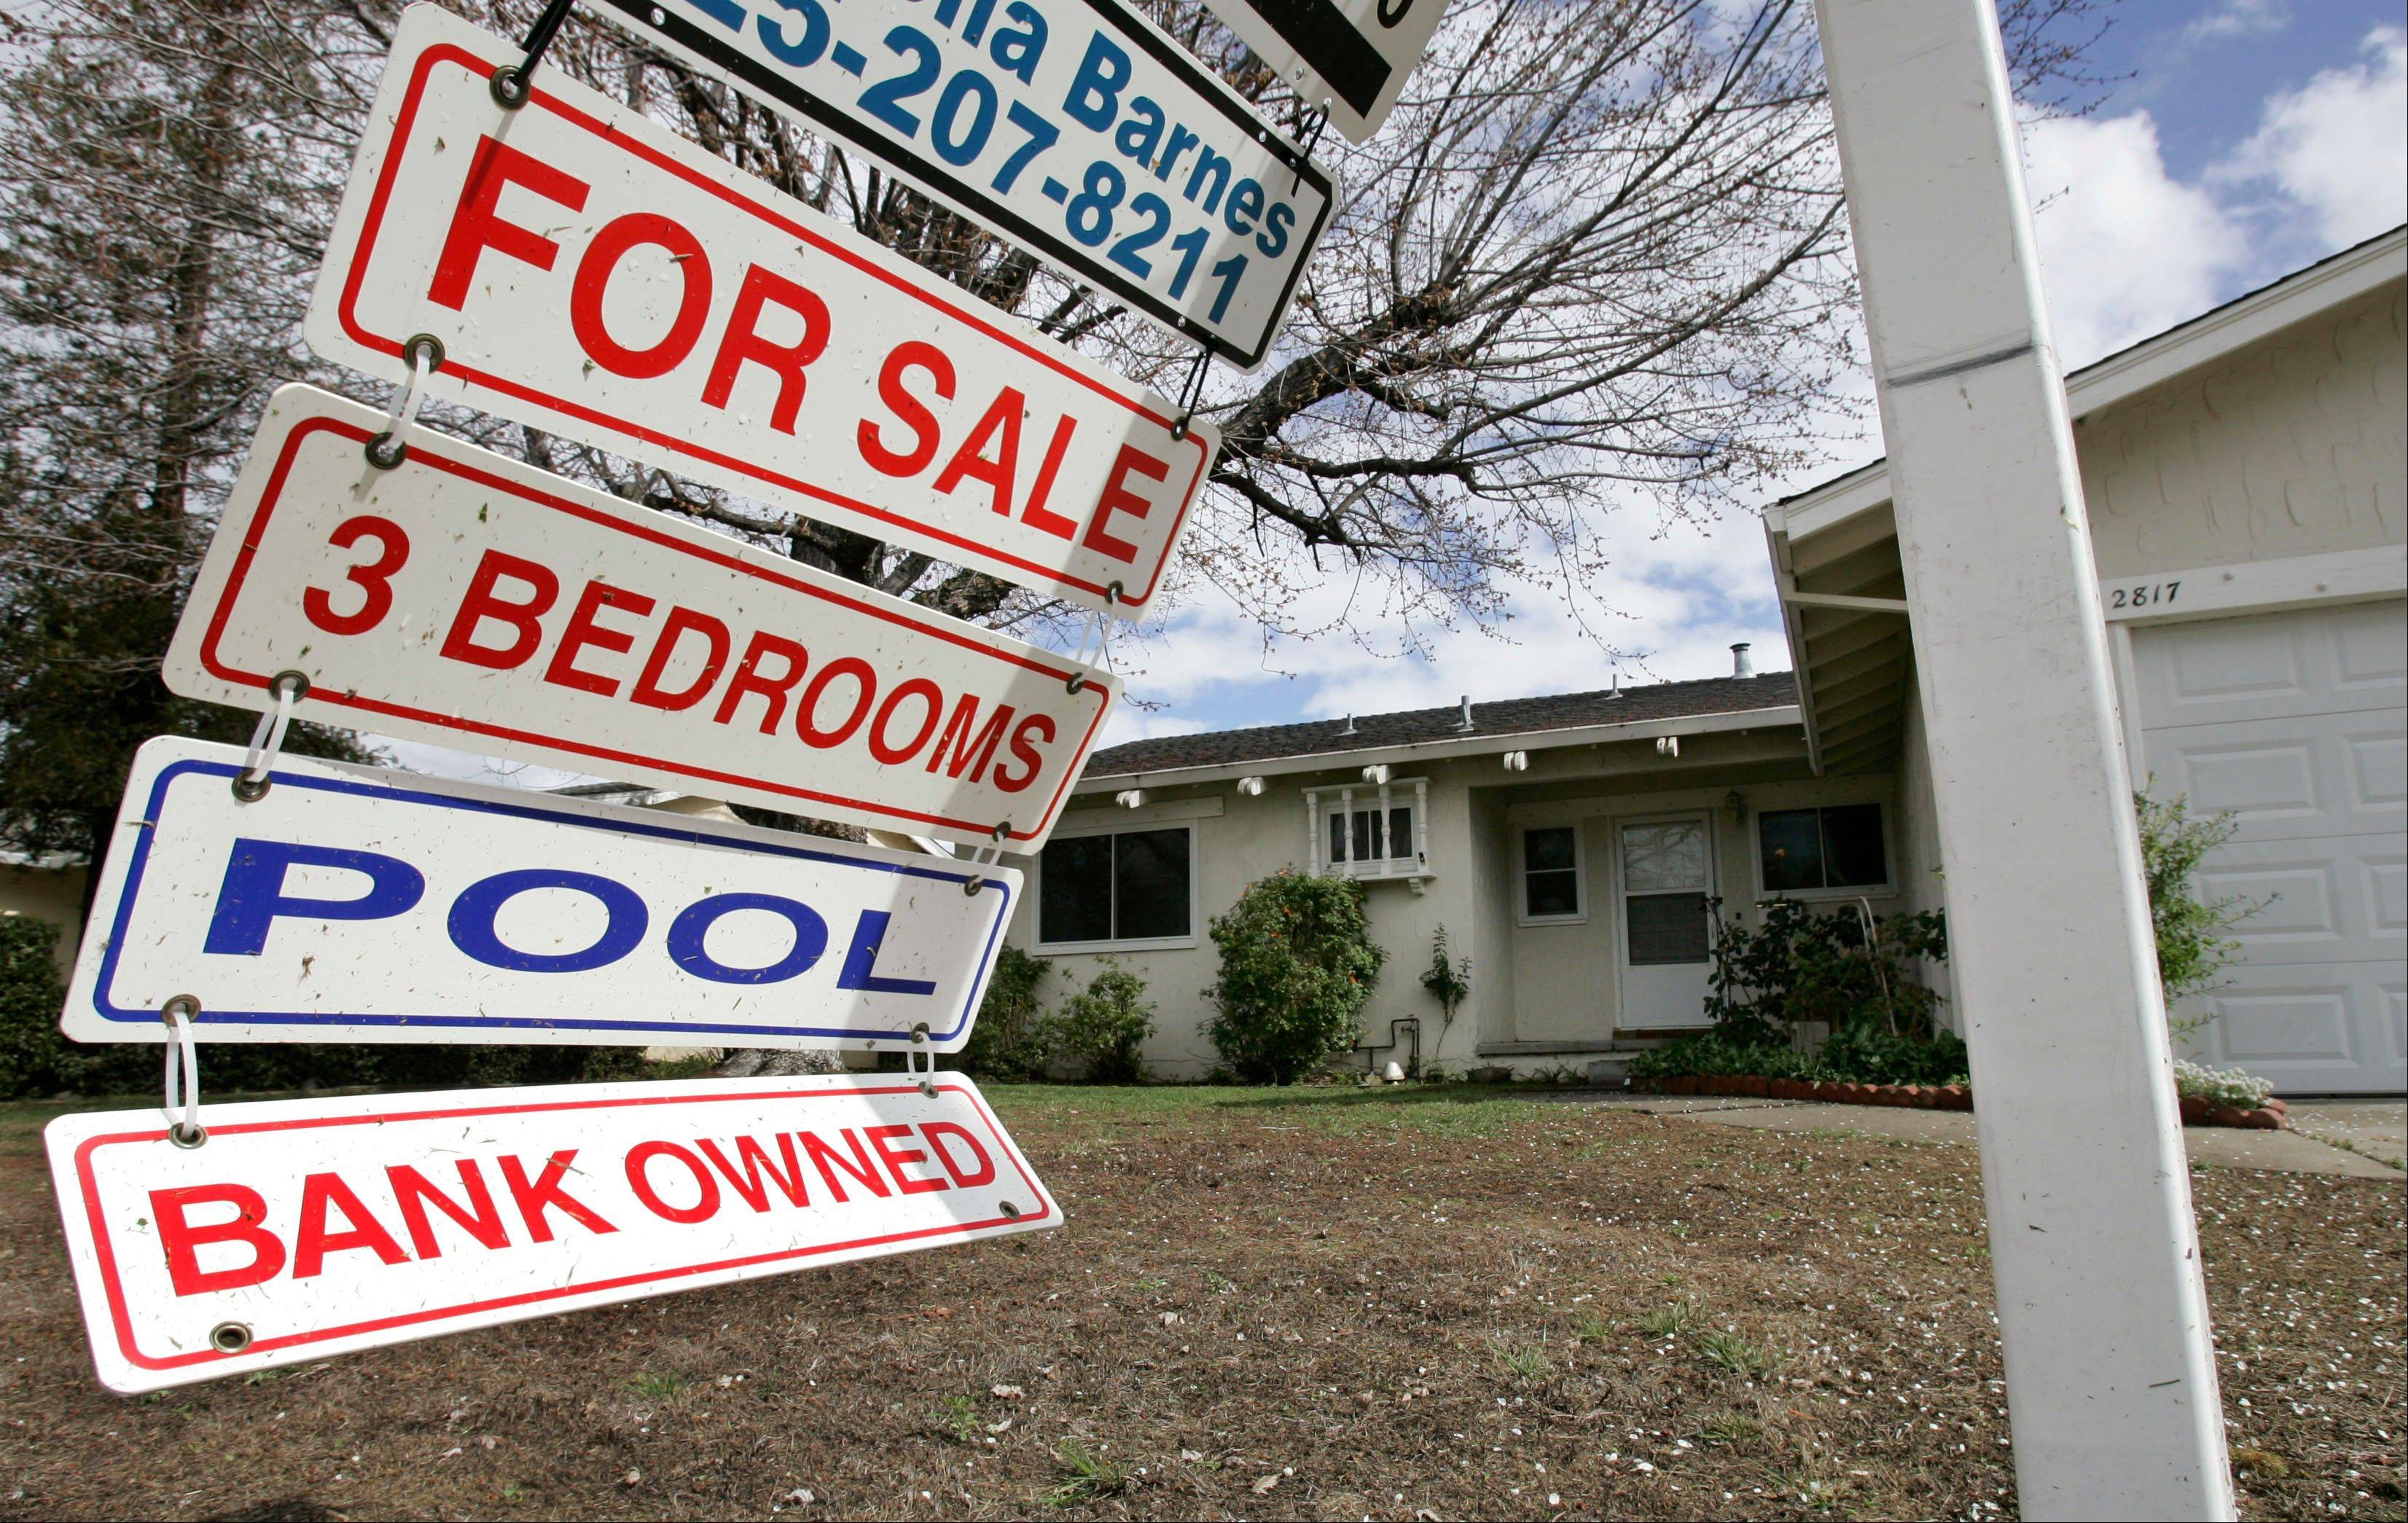 California cities made up seven of the top 10 metro areas with the highest rates of new foreclosures in the first six months of this year, according to data to be released Thursday by RealtyTrac, which tracks foreclosure properties. That�s unchanged from the same time last year.